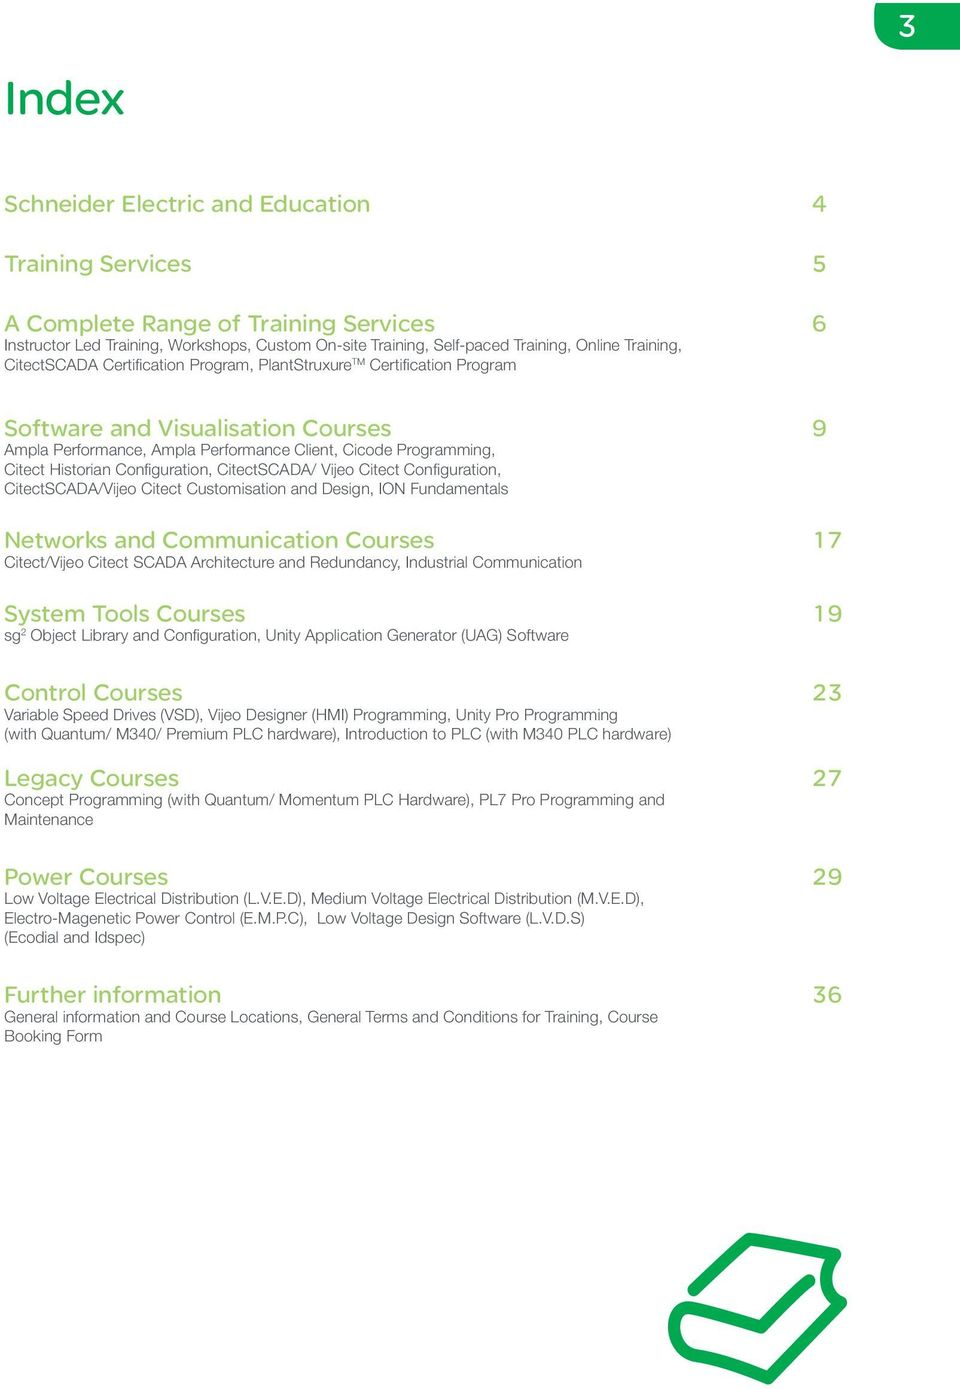 Schneider Electric South Africa  Training Services Guide - PDF